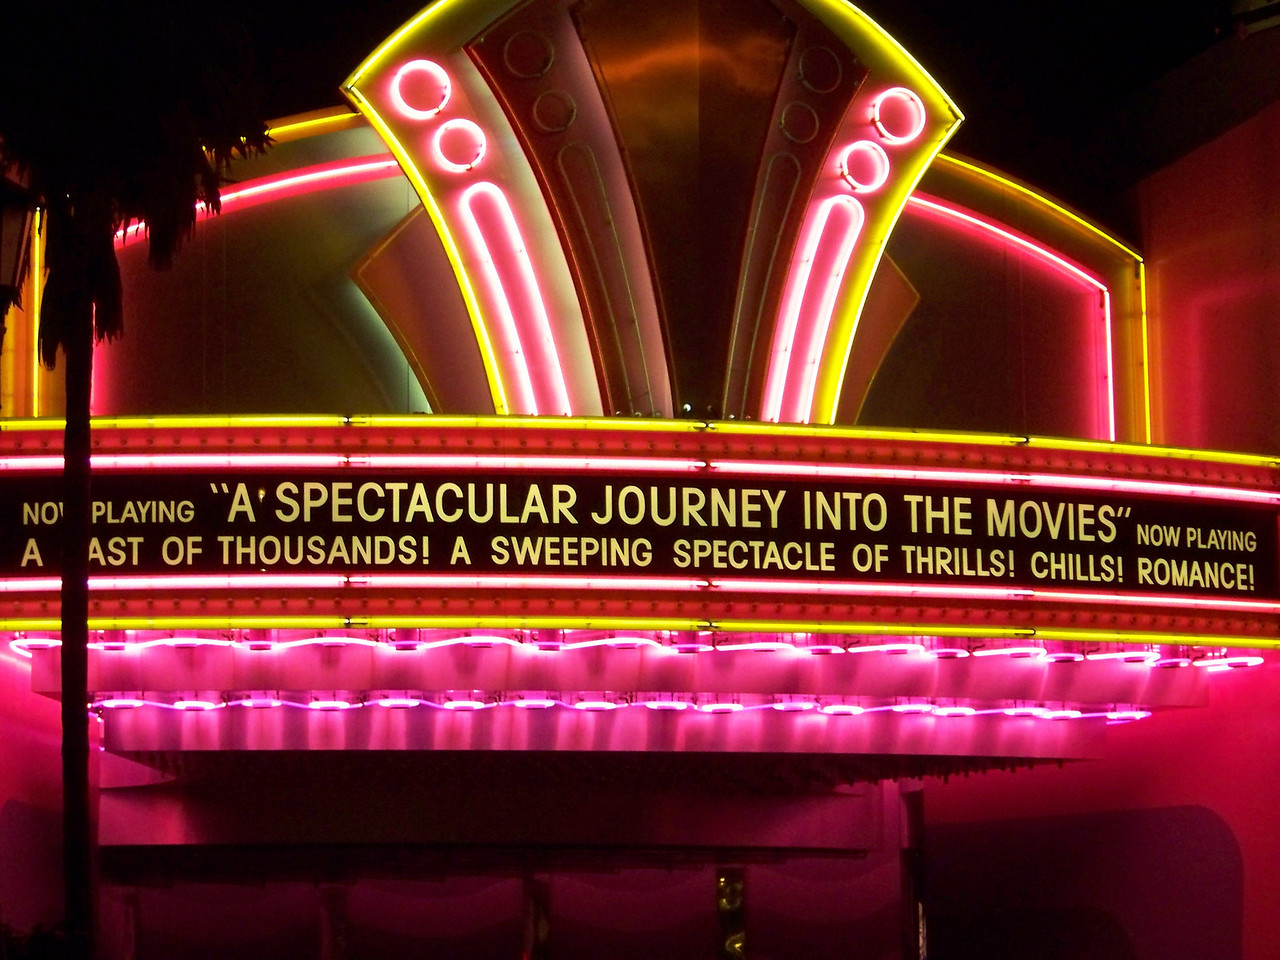 Now we're sitting in our ride vehicle, about to begin.  The doors under this marquee open, and we start slowly rolling through scenes from Hollywood history.  Lights!  Camera!  Action!<br /> [Disney's Hollywood Studios - Great Movie Ride]